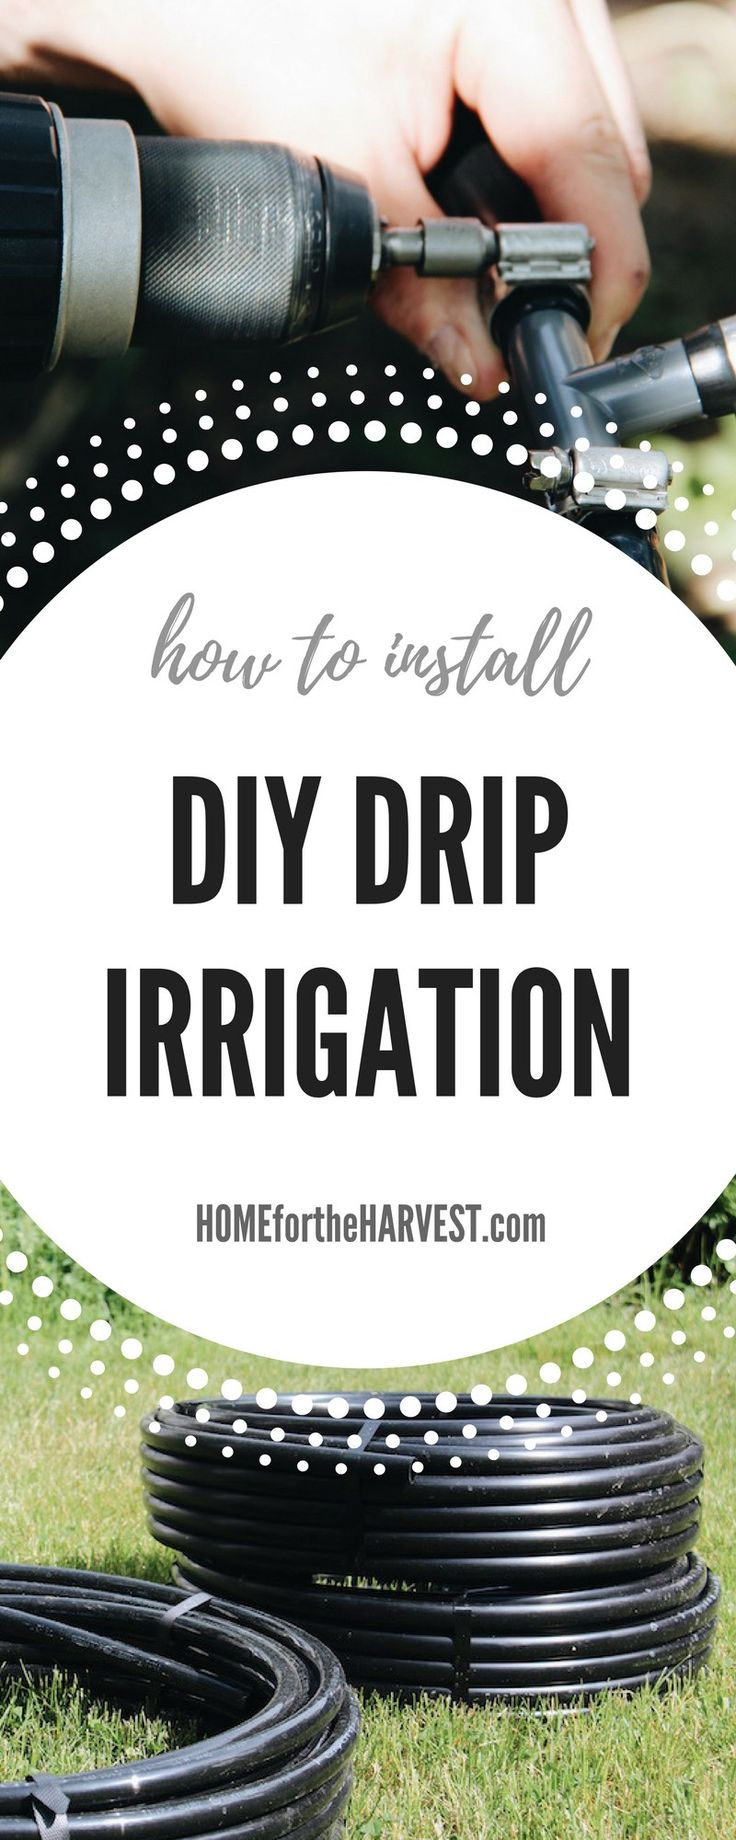 How to Install DIY Drip Irrigation – Tutorial and Free Printable | Home for the Harvest